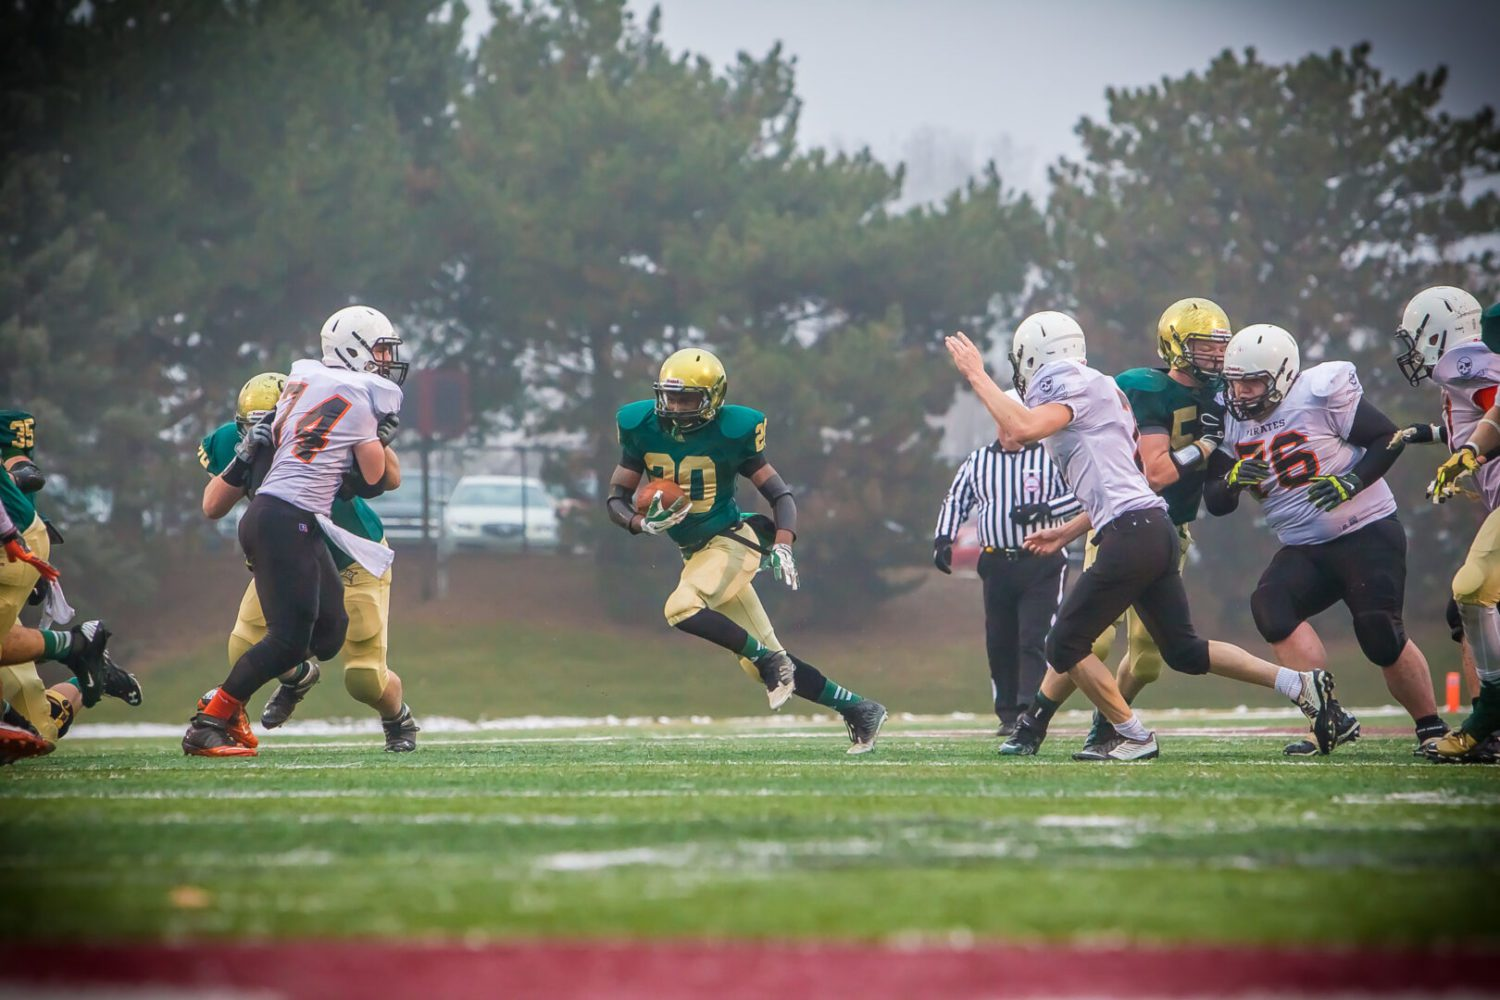 MCC loses its quarterback early, but still rolls past Harbor Beach 42-6 to advance to the Division 8 state finals